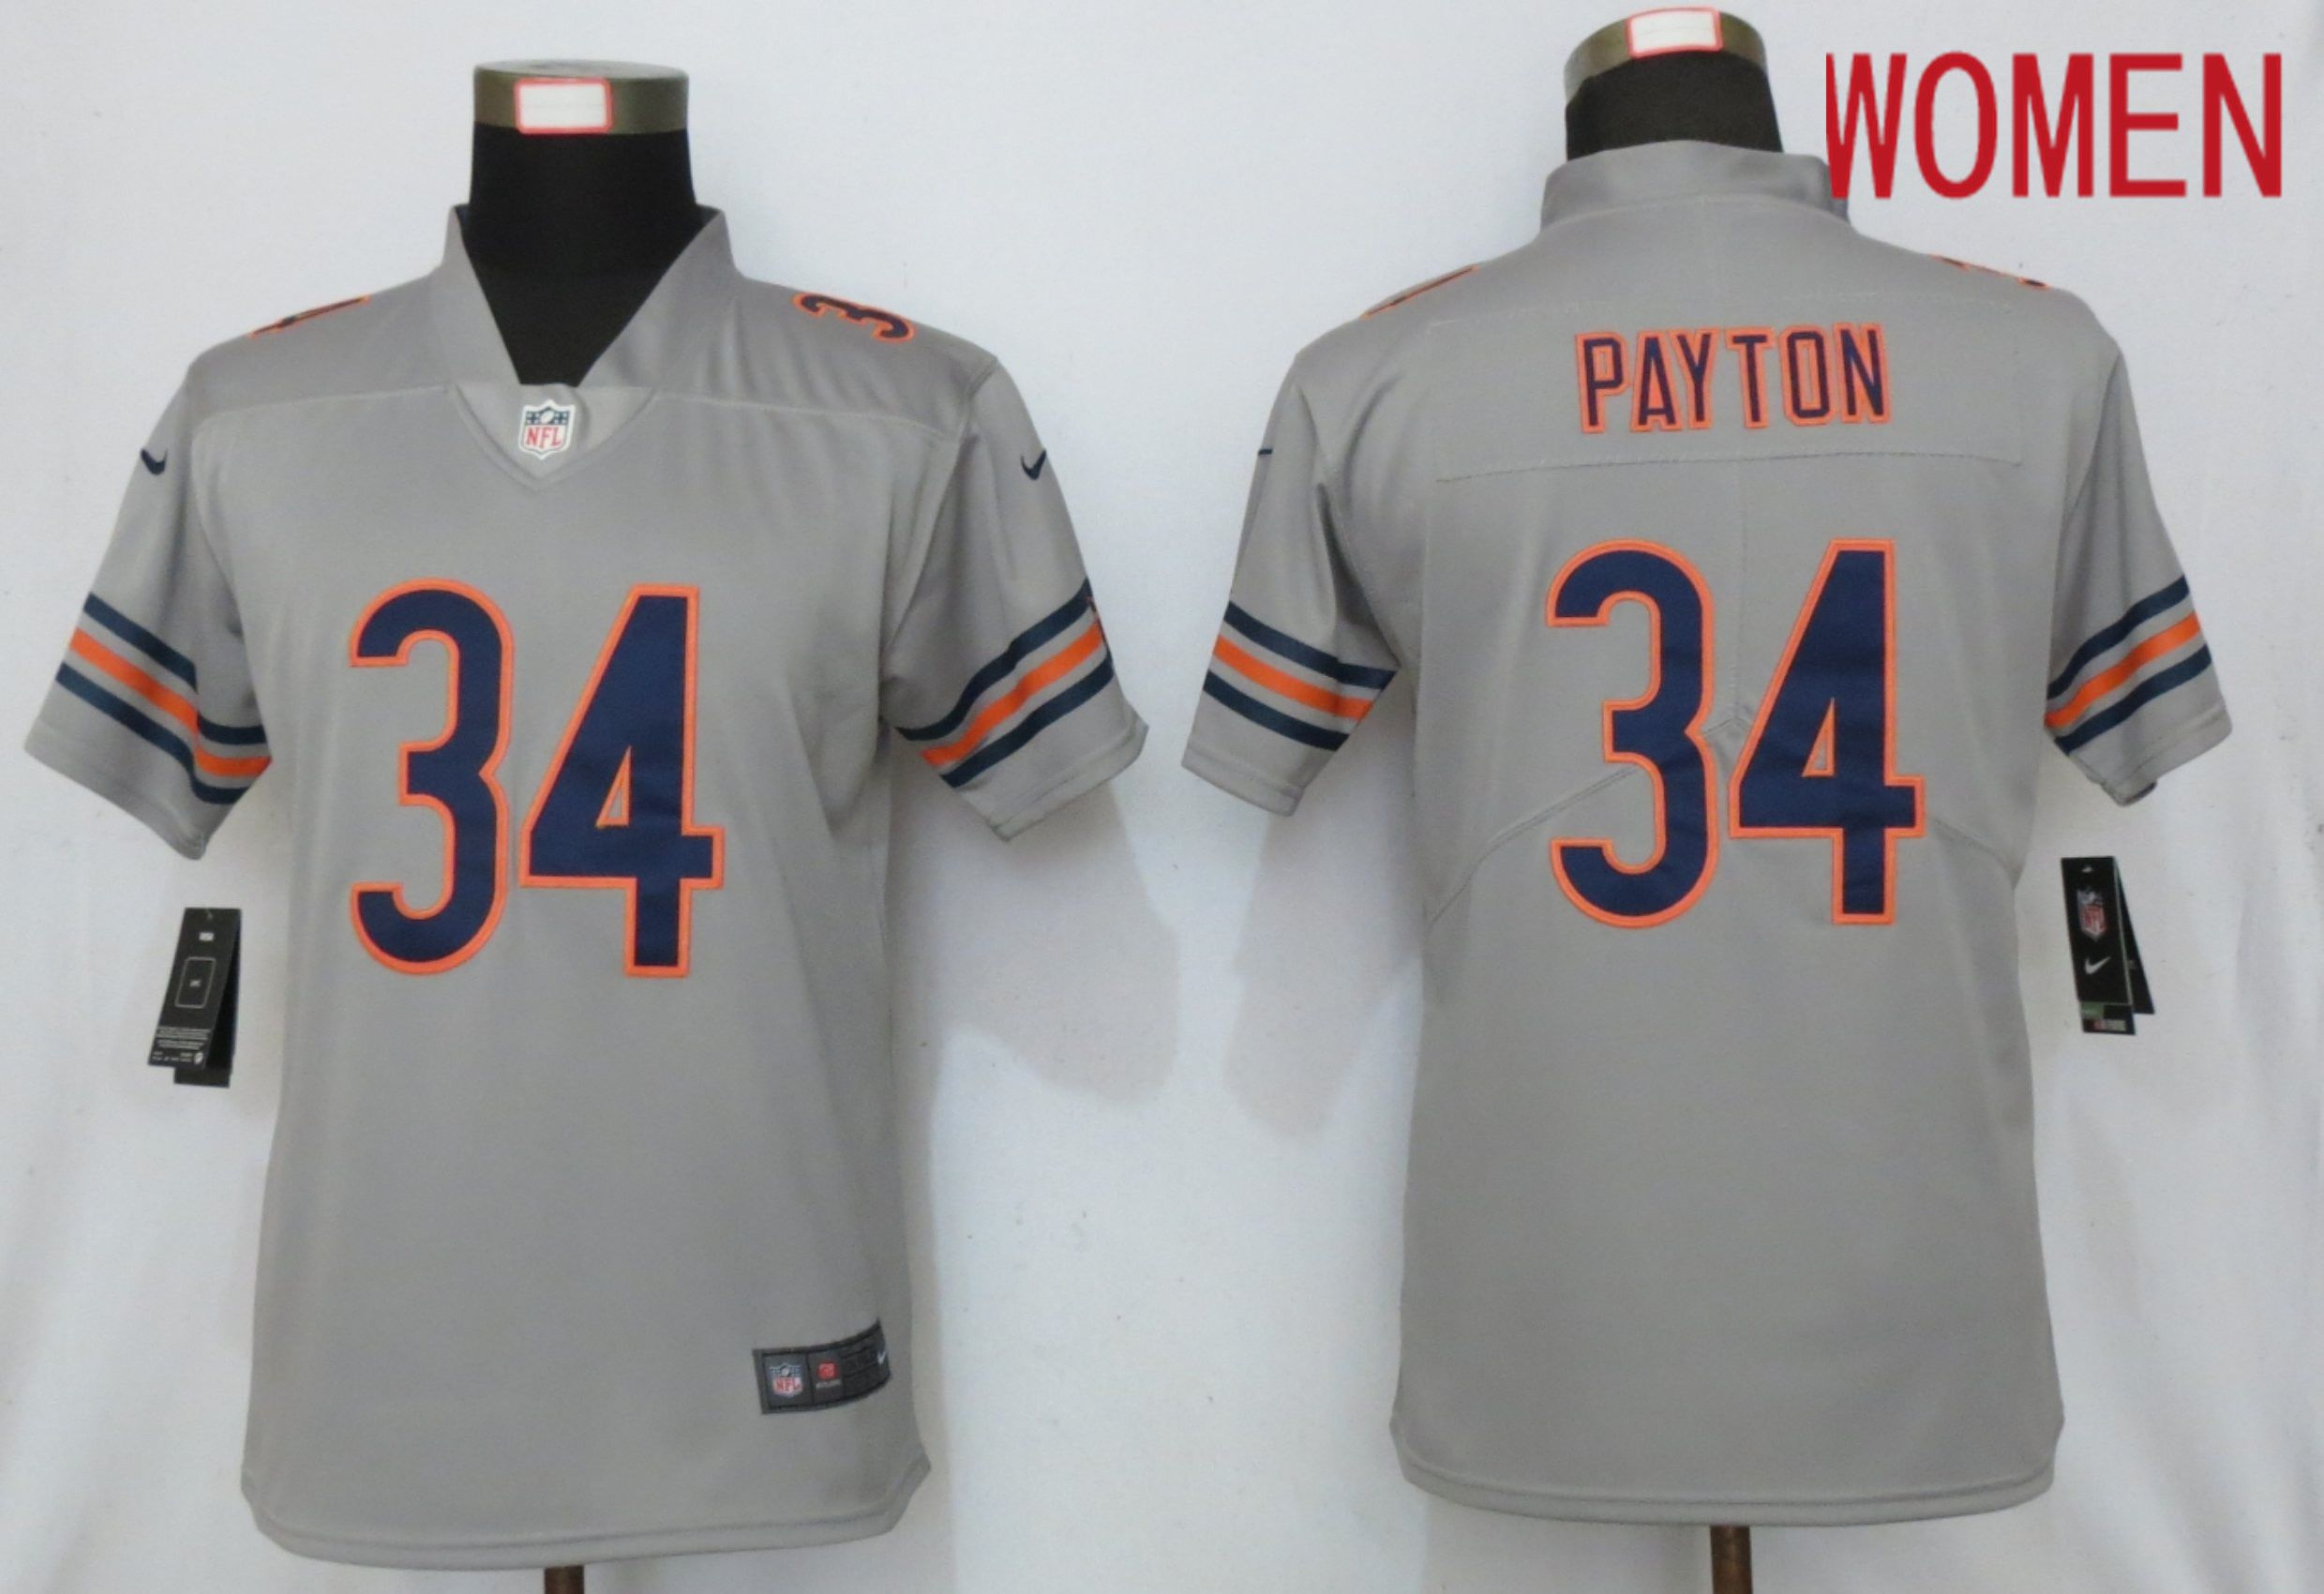 Women Chicago Bears 34 Payton Grey 2019 Vapor Untouchable Nike Silver Inverted Elite Playe NFL Jerseys